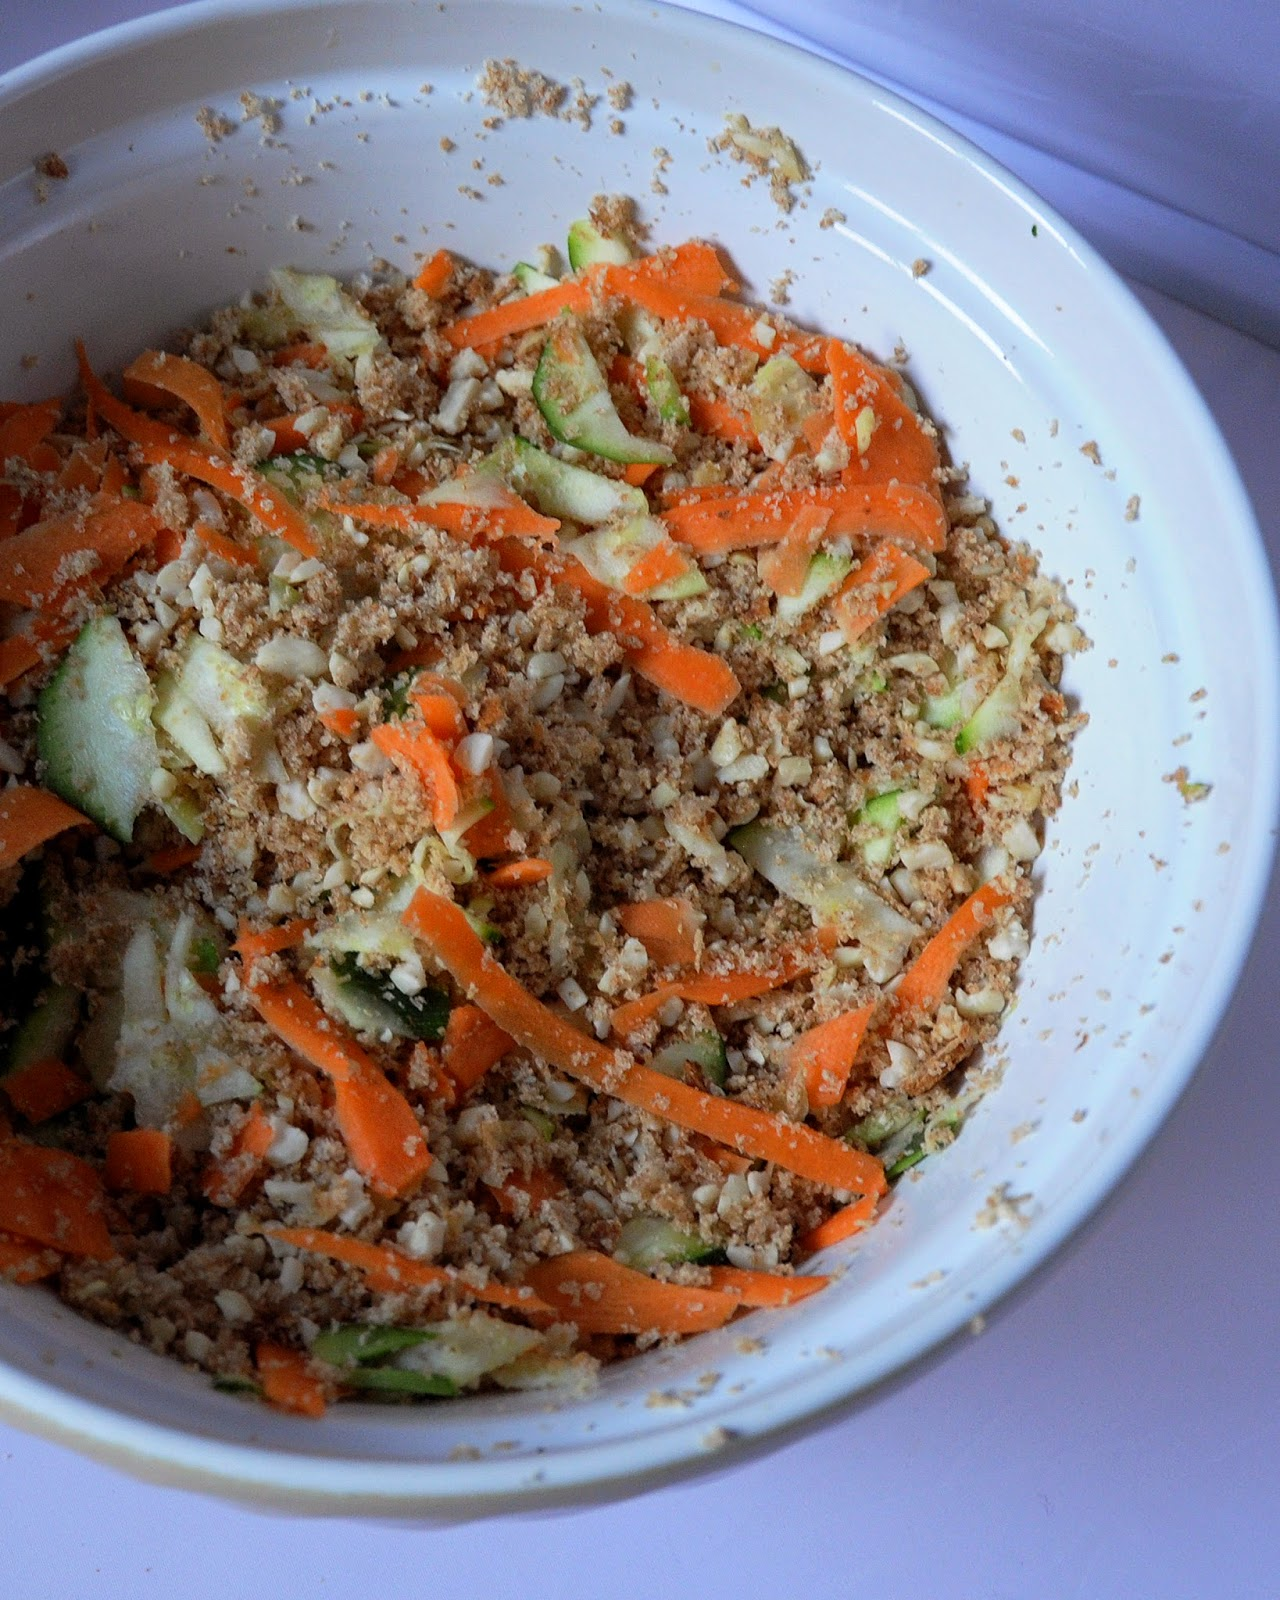 Vegetable, breadcrumb and nut mixture